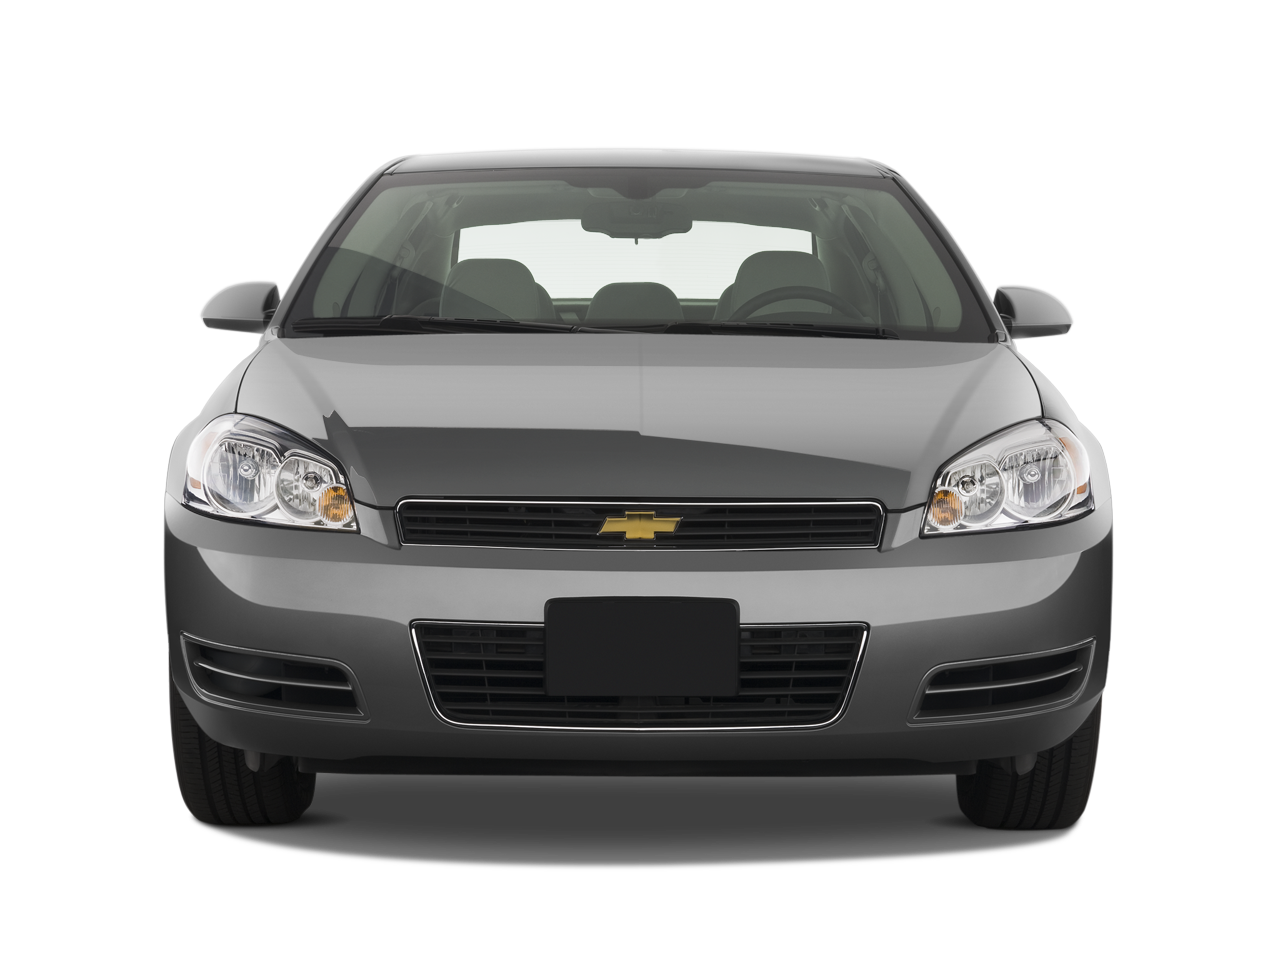 2007-2008 Chevrolet Impala Owners Suing GM Over Tire Wear